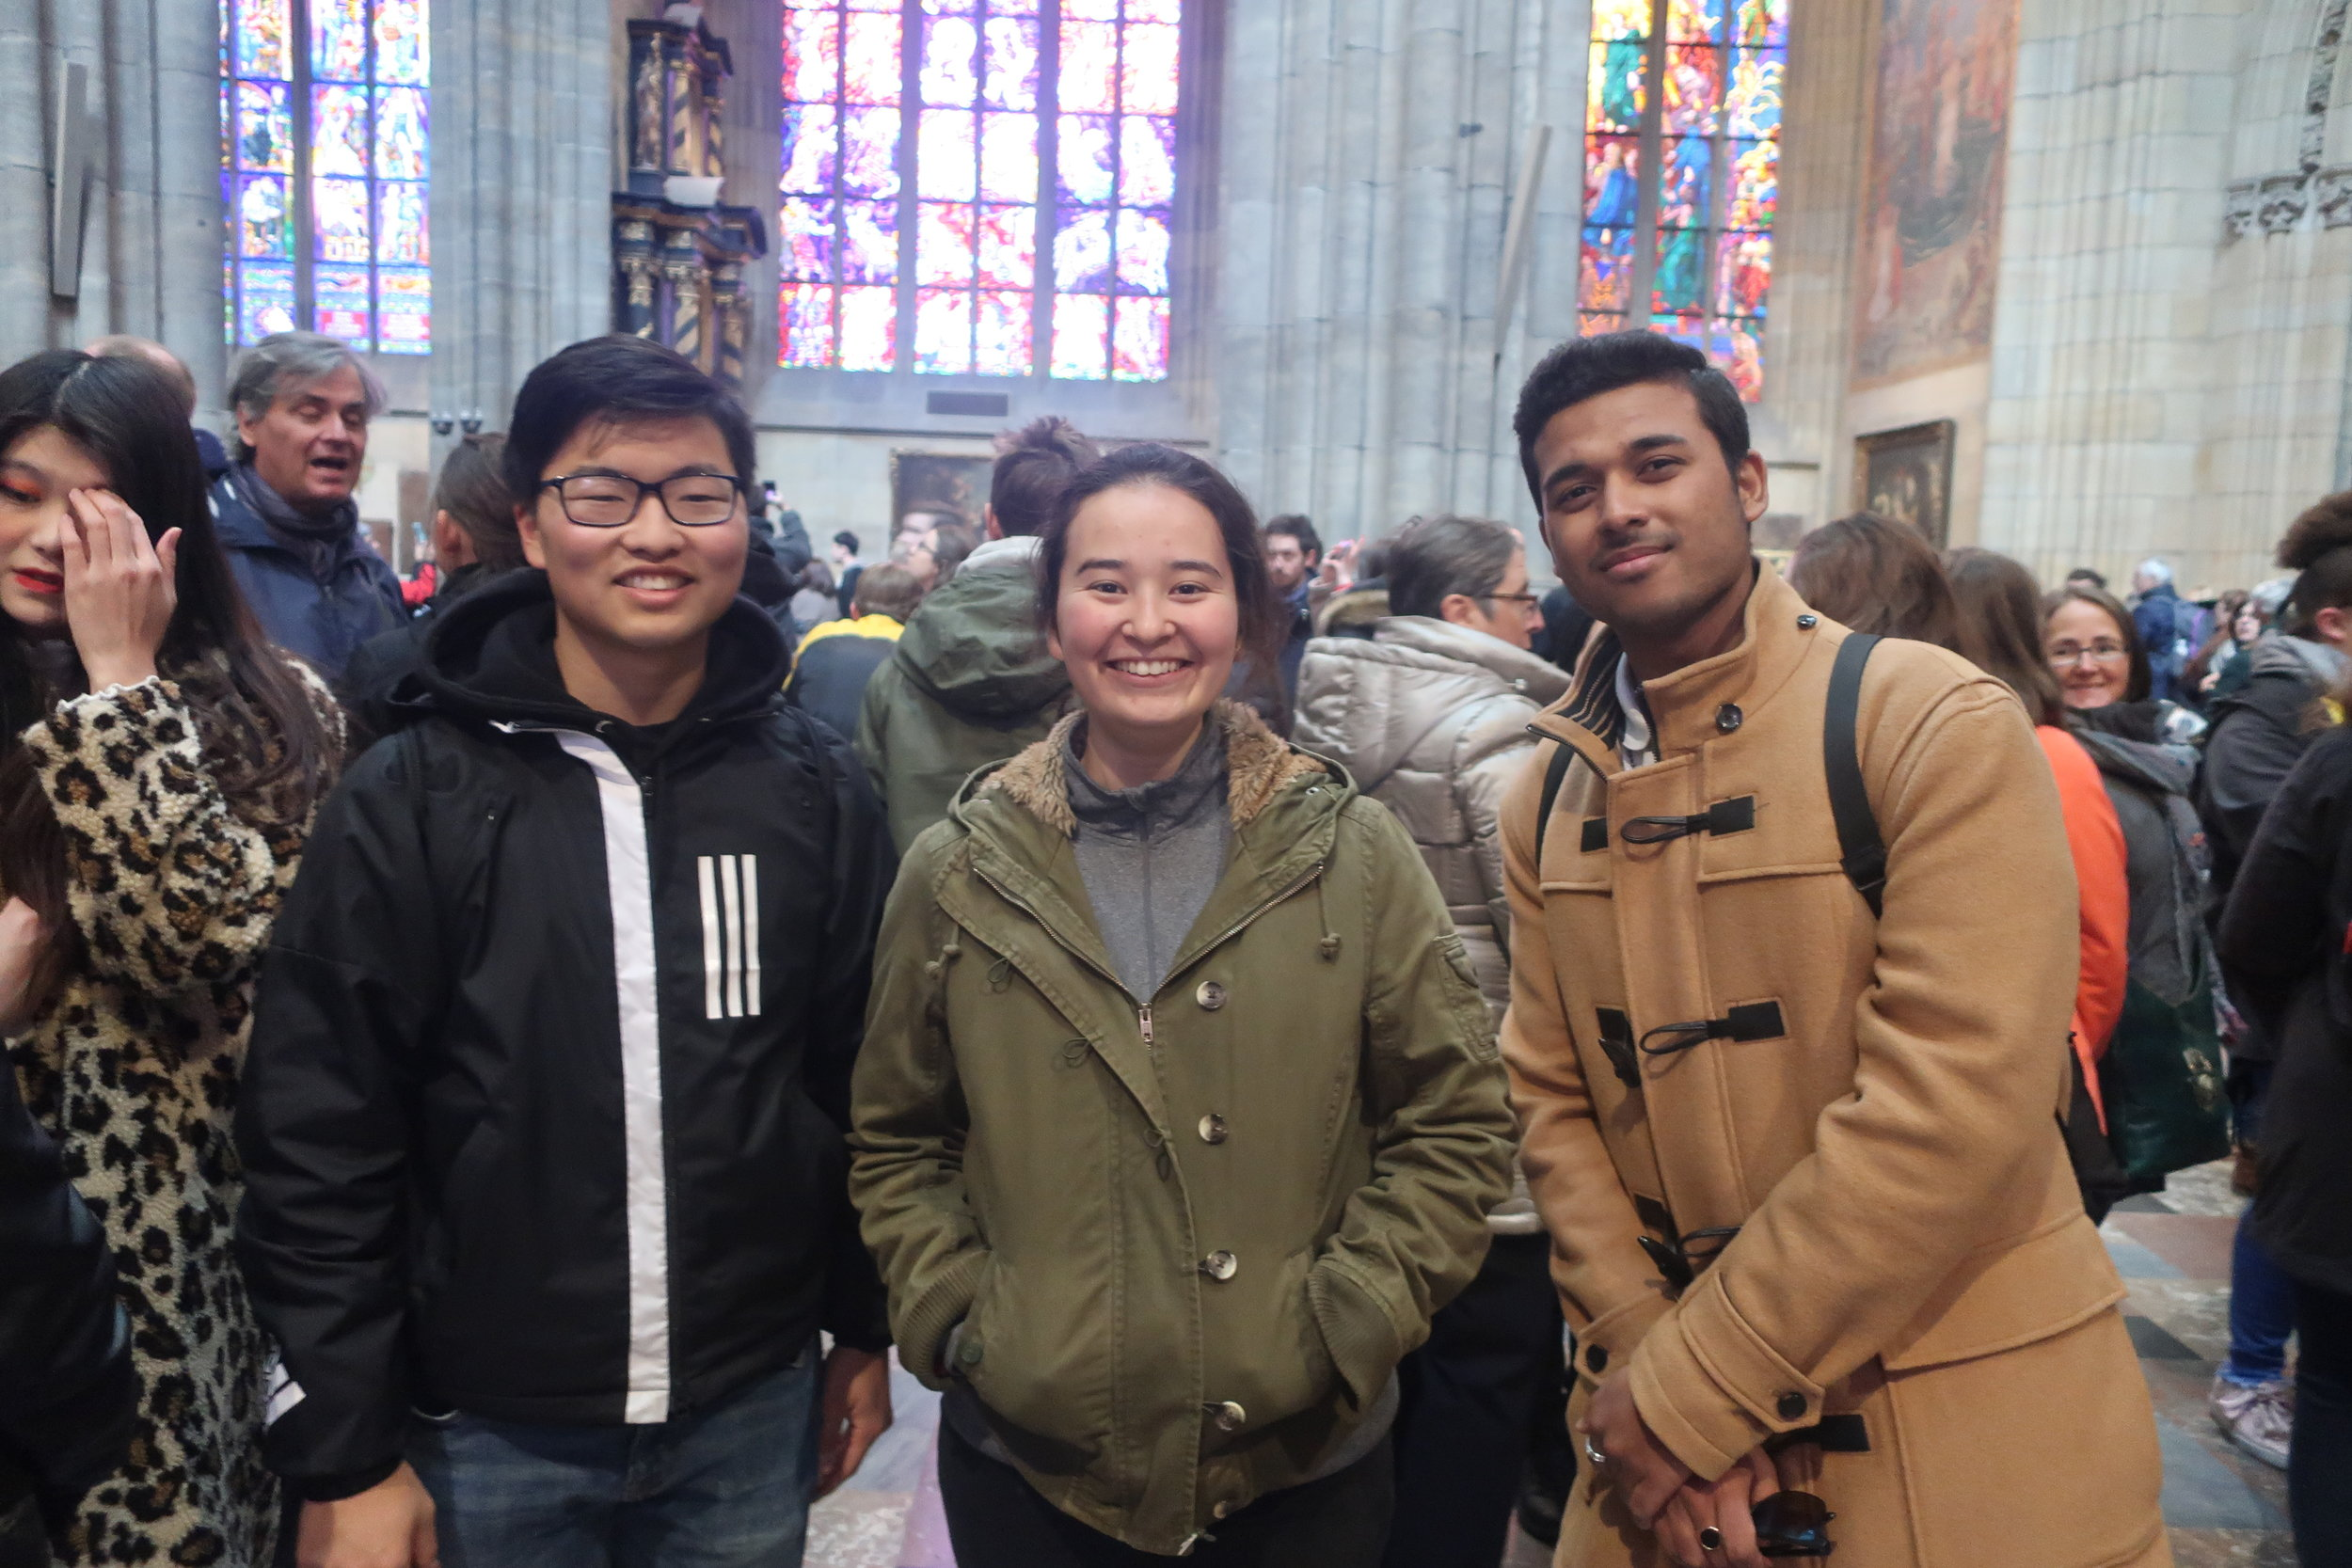 St. Vitus Cathedral with David and Younng Joo with Suyash, one year CARP guest